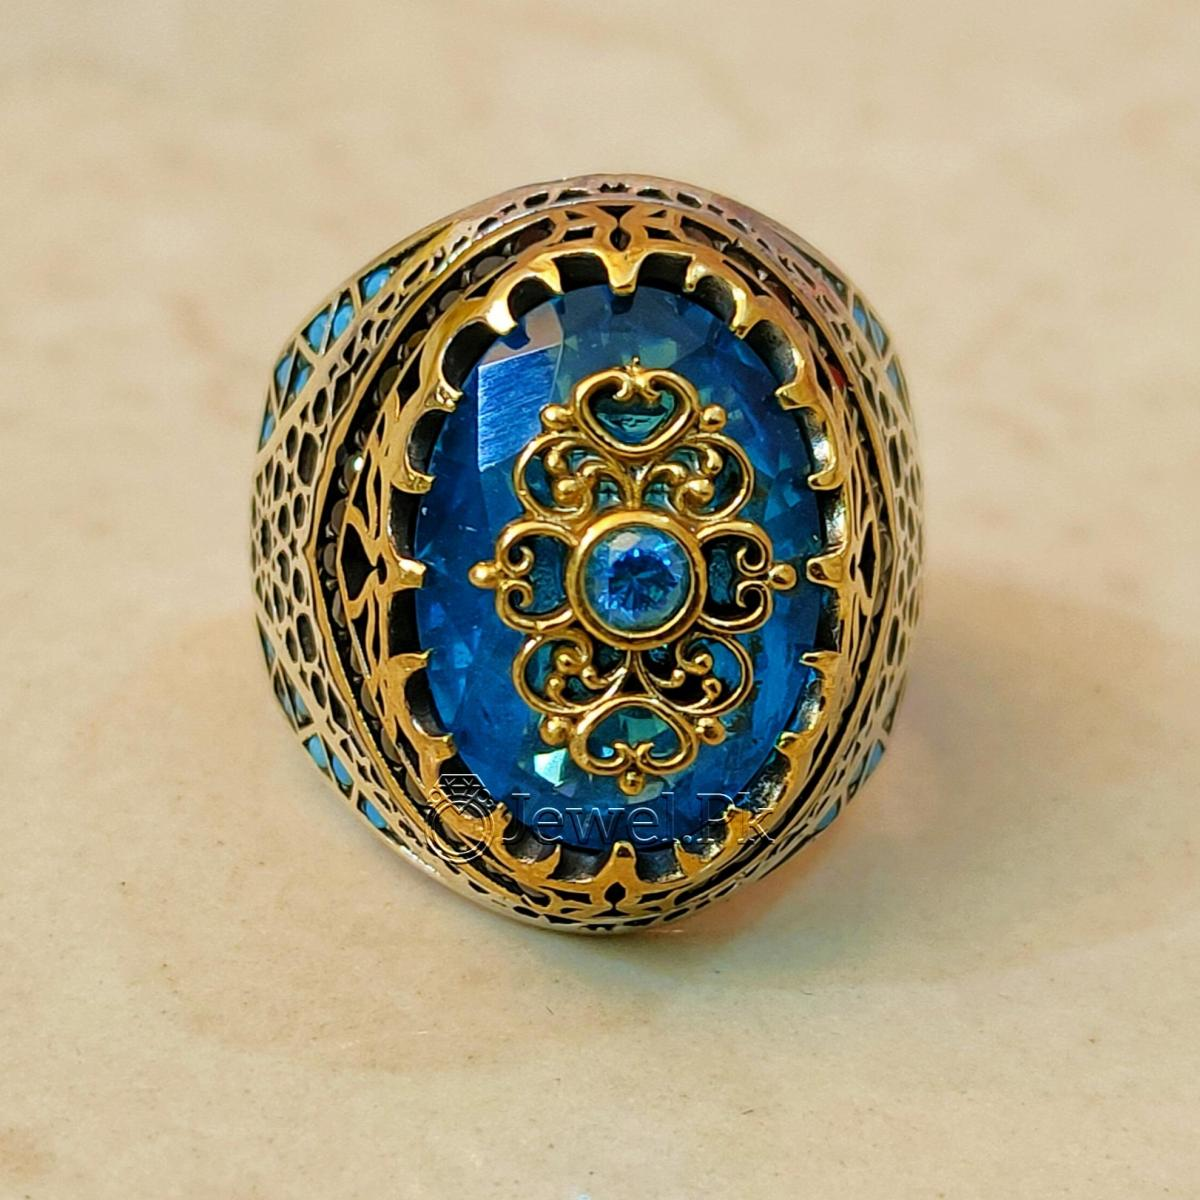 Turkish Rings 925 Silver Handmade Imported Ottoman Rings Pakistan 6 natural gemstones pakistan + 925 silver jewelry online